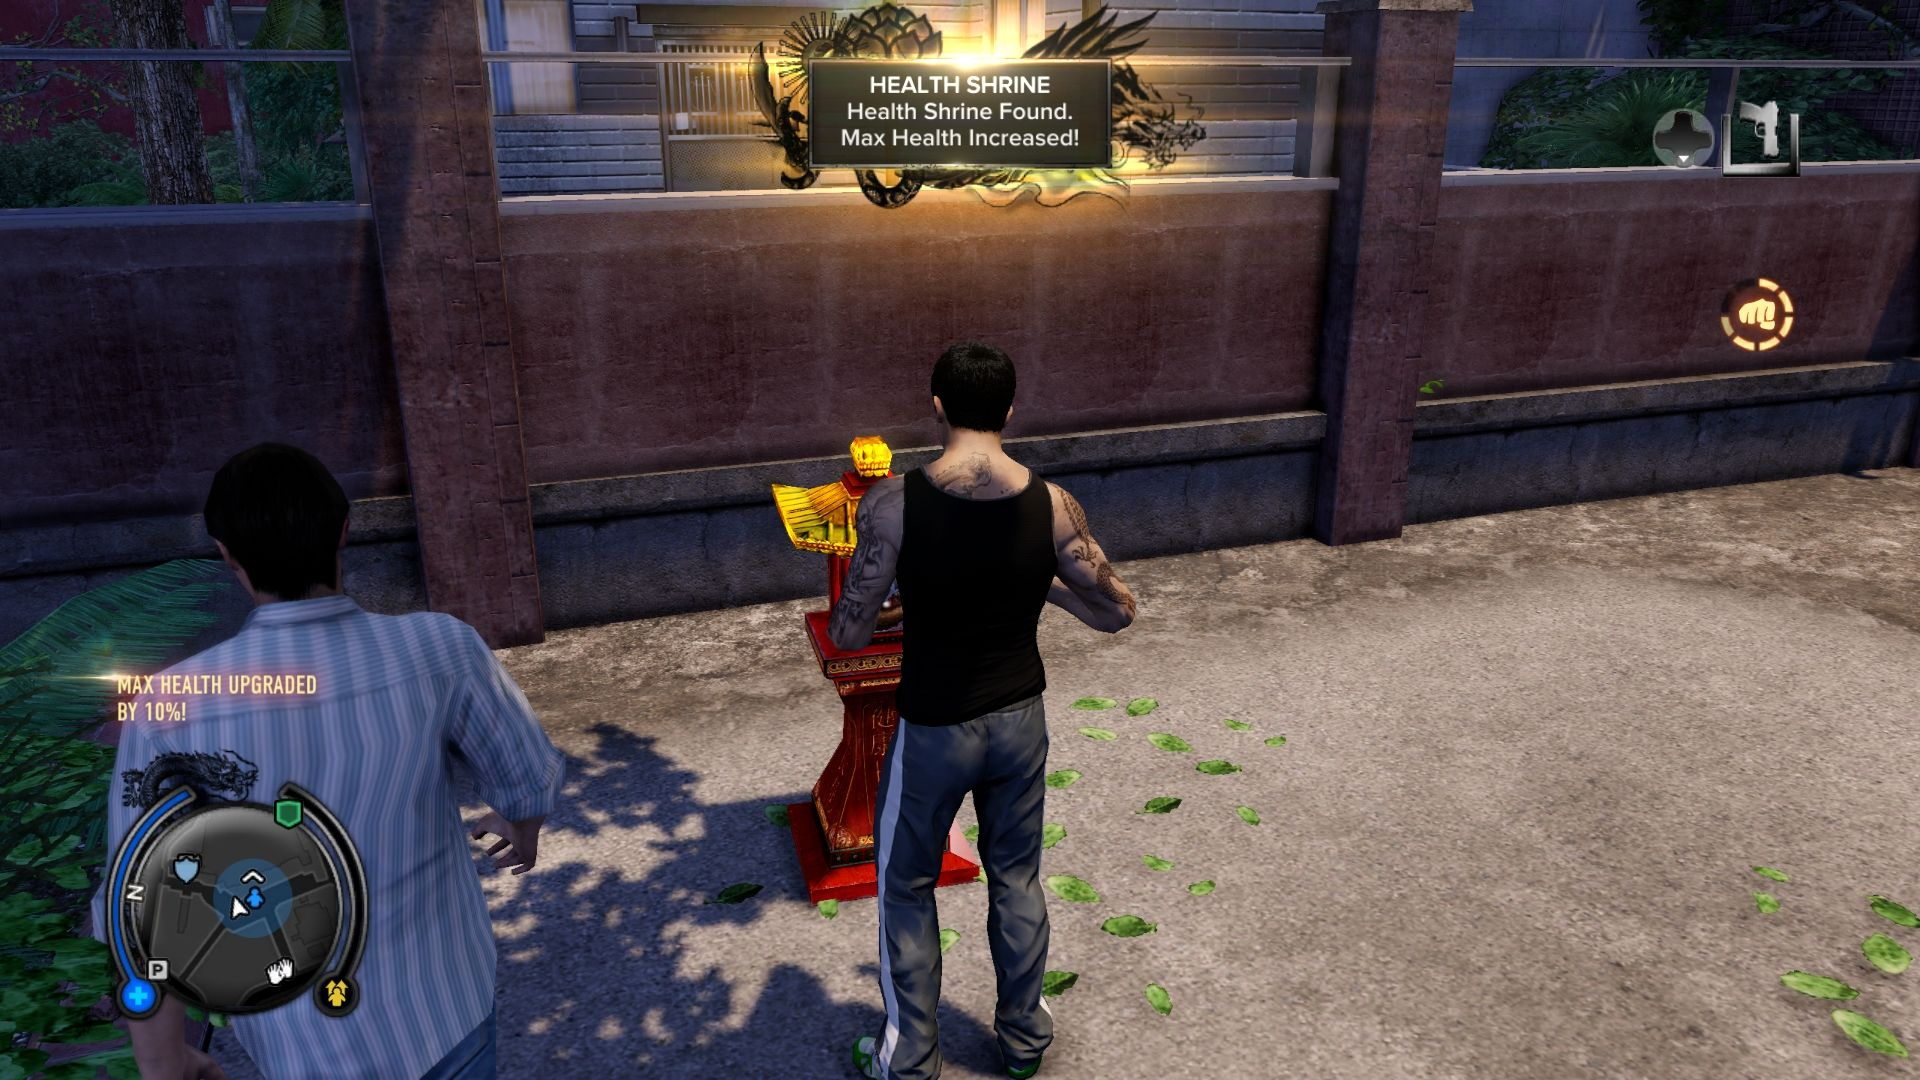 Sleeping Dogs Windows Visiting health shrines grants permanent health boost, 100% max.